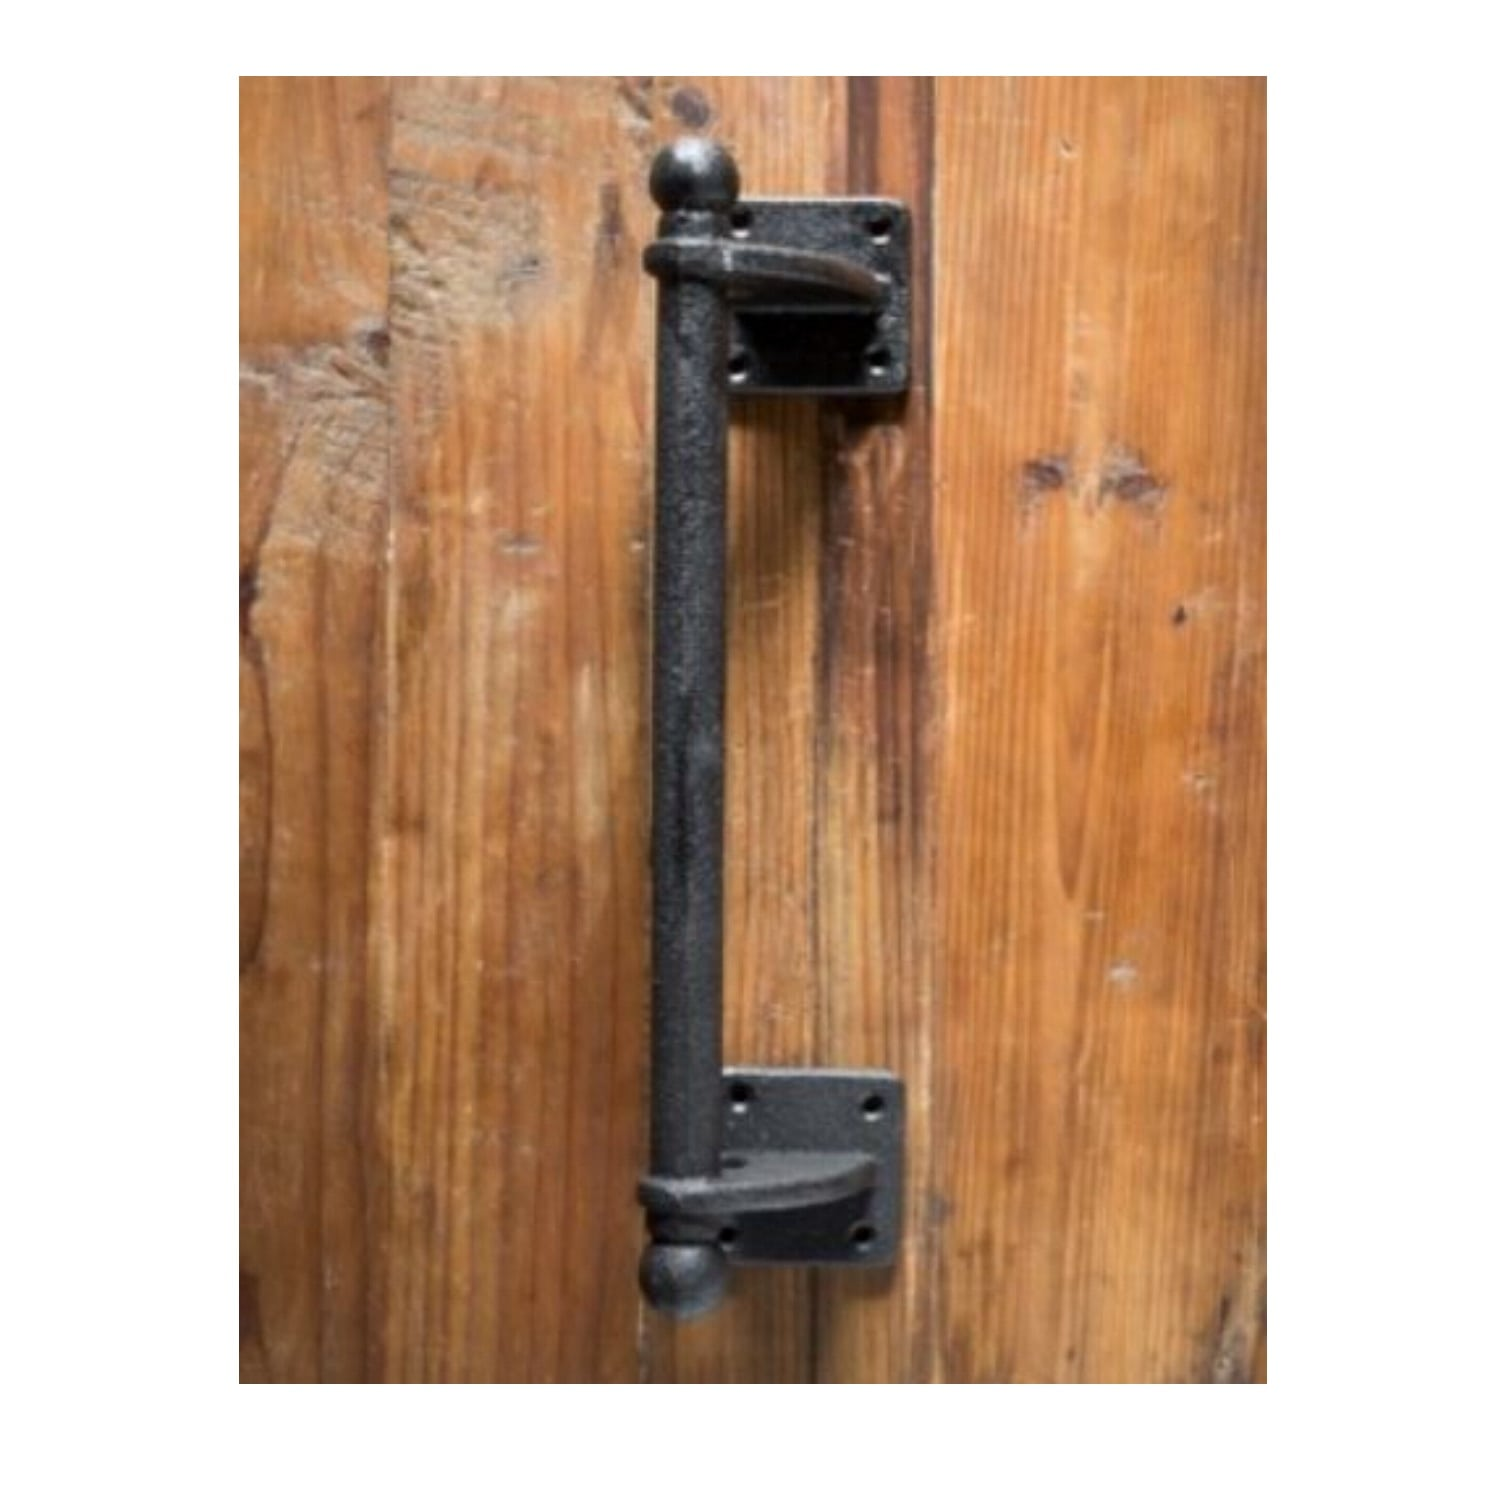 commercial offset door pulls. Commercial Cast Iron Door Pull With Offset Construction Sideways Or Up And Down Pulls U